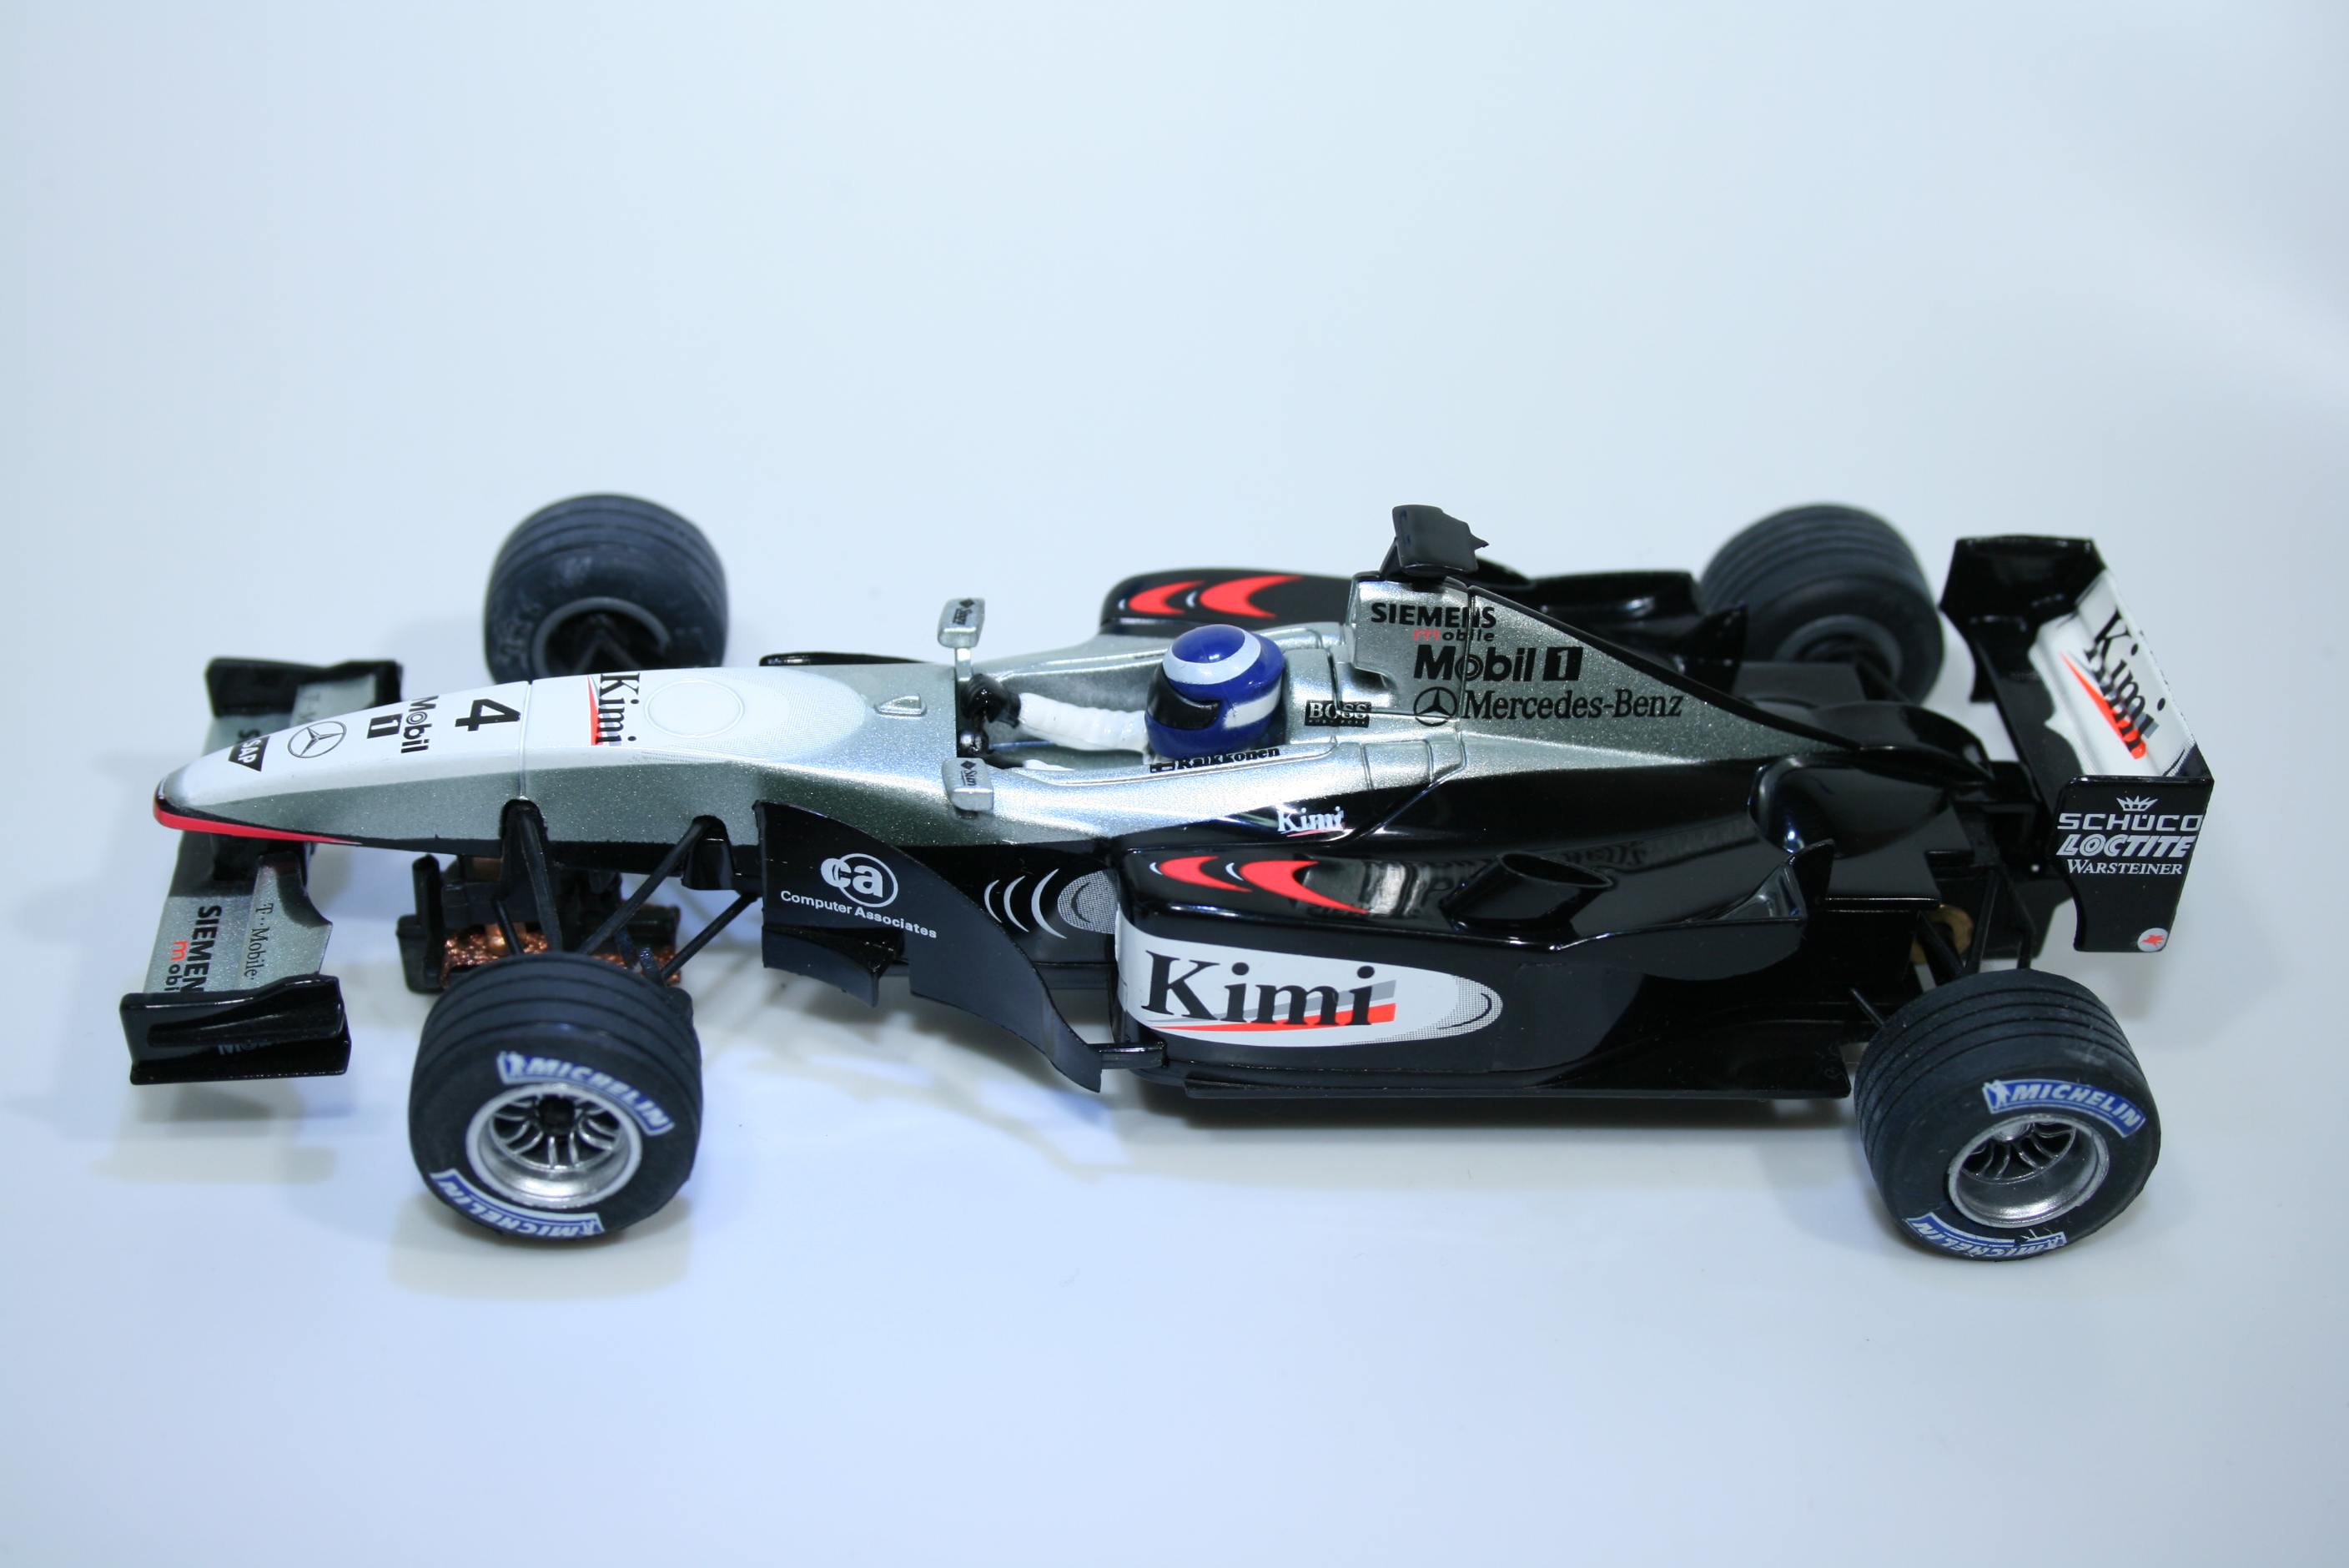 1054 Mclaren MP4-17 2002 K Raikannon SCX 61020 2003 Boxed